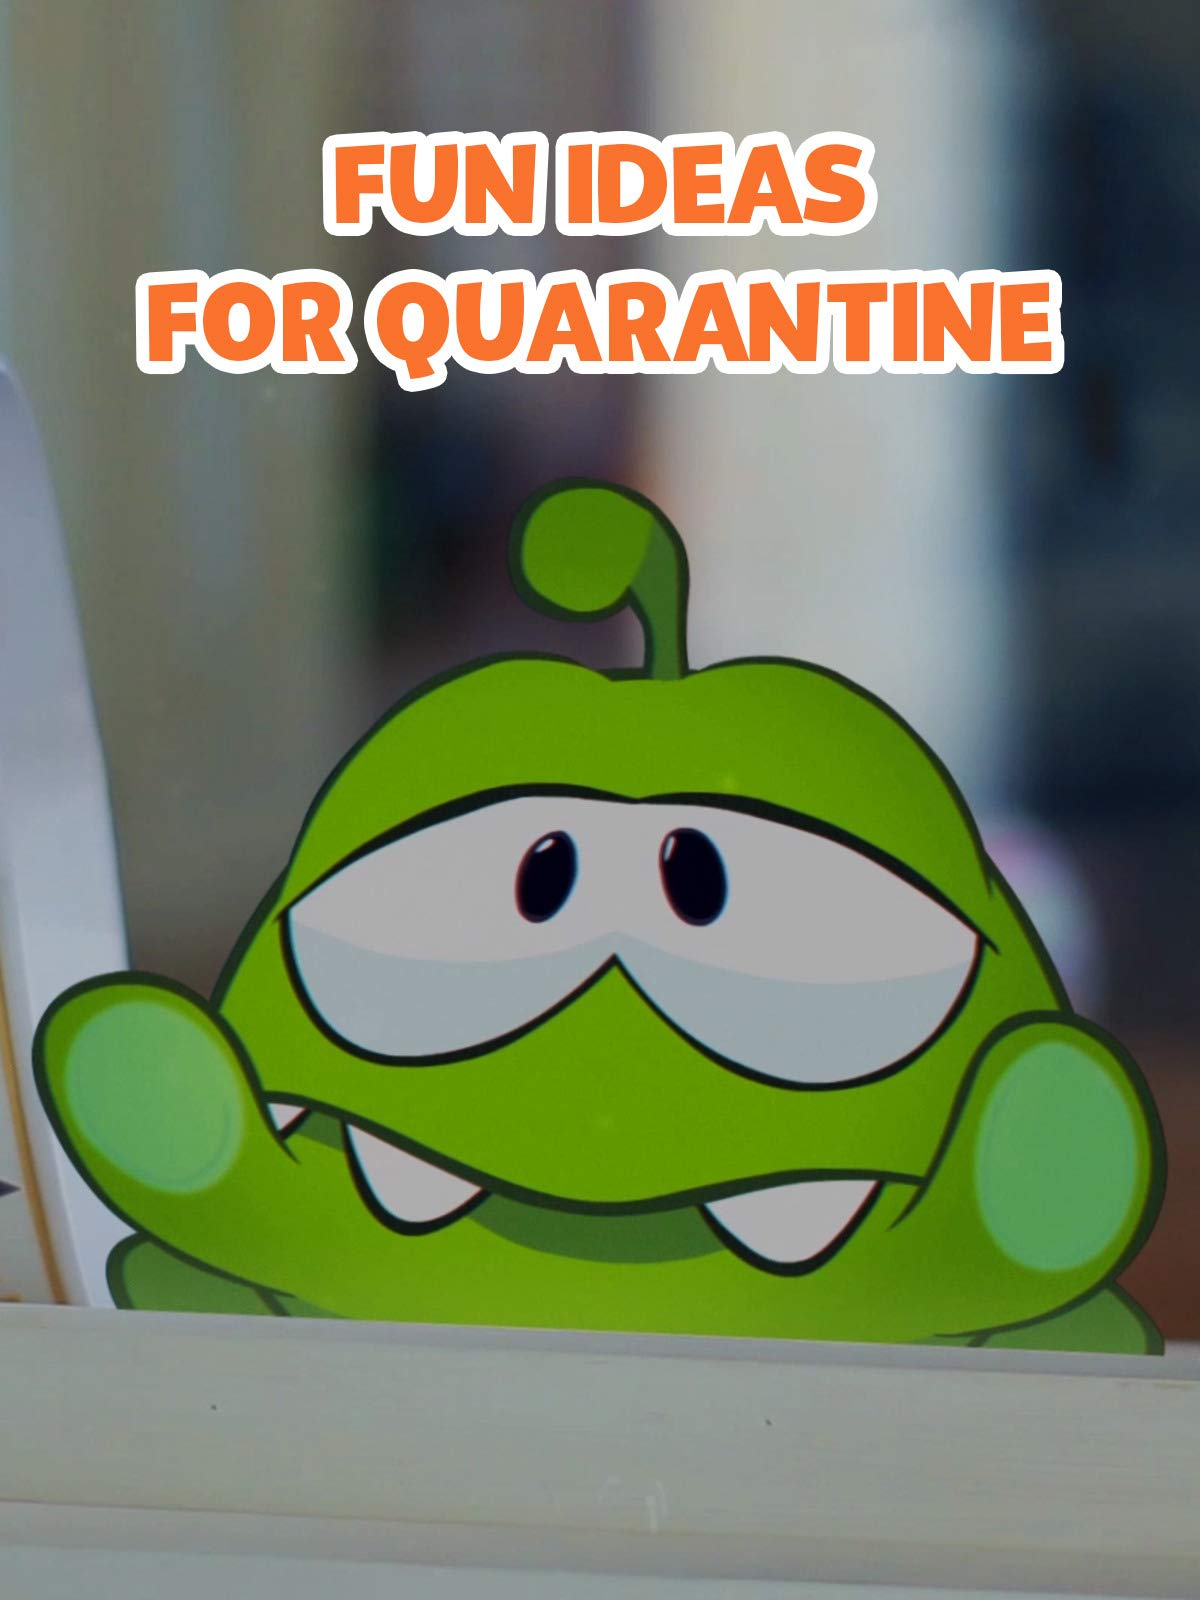 Clip: Om Nom Stories - Fun Ideas for Quarantine